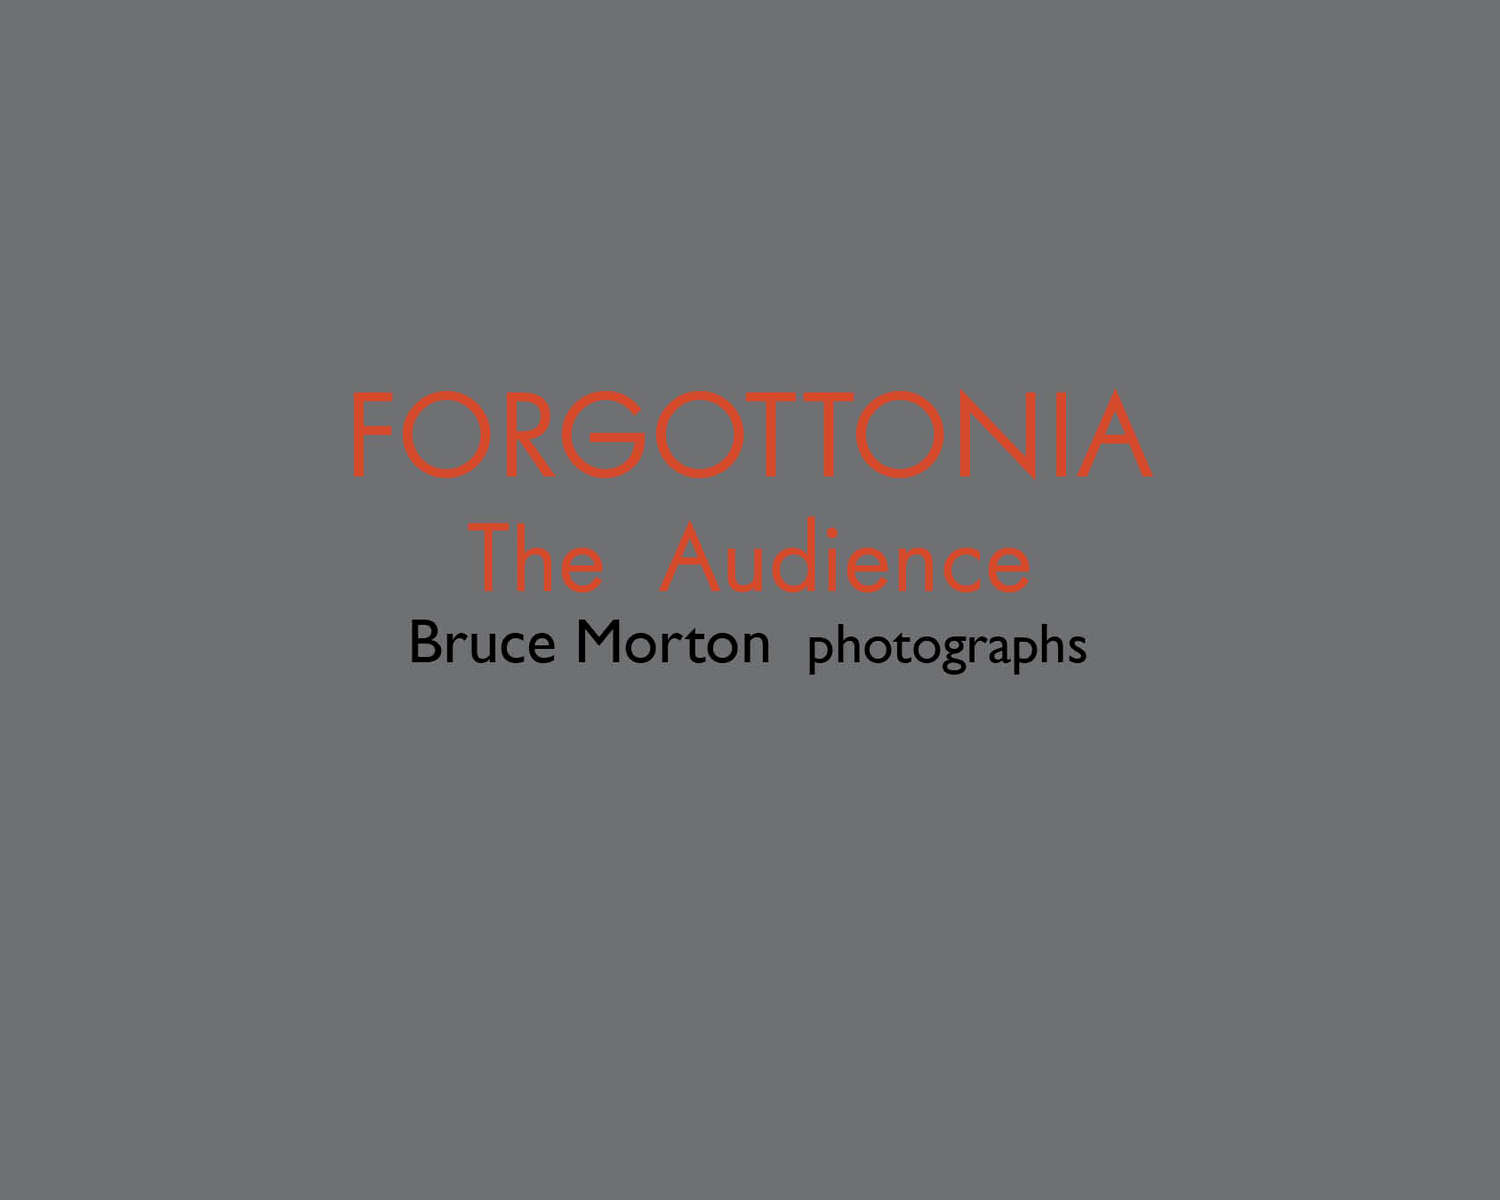 12_Forgottonia_Audience_BMorton